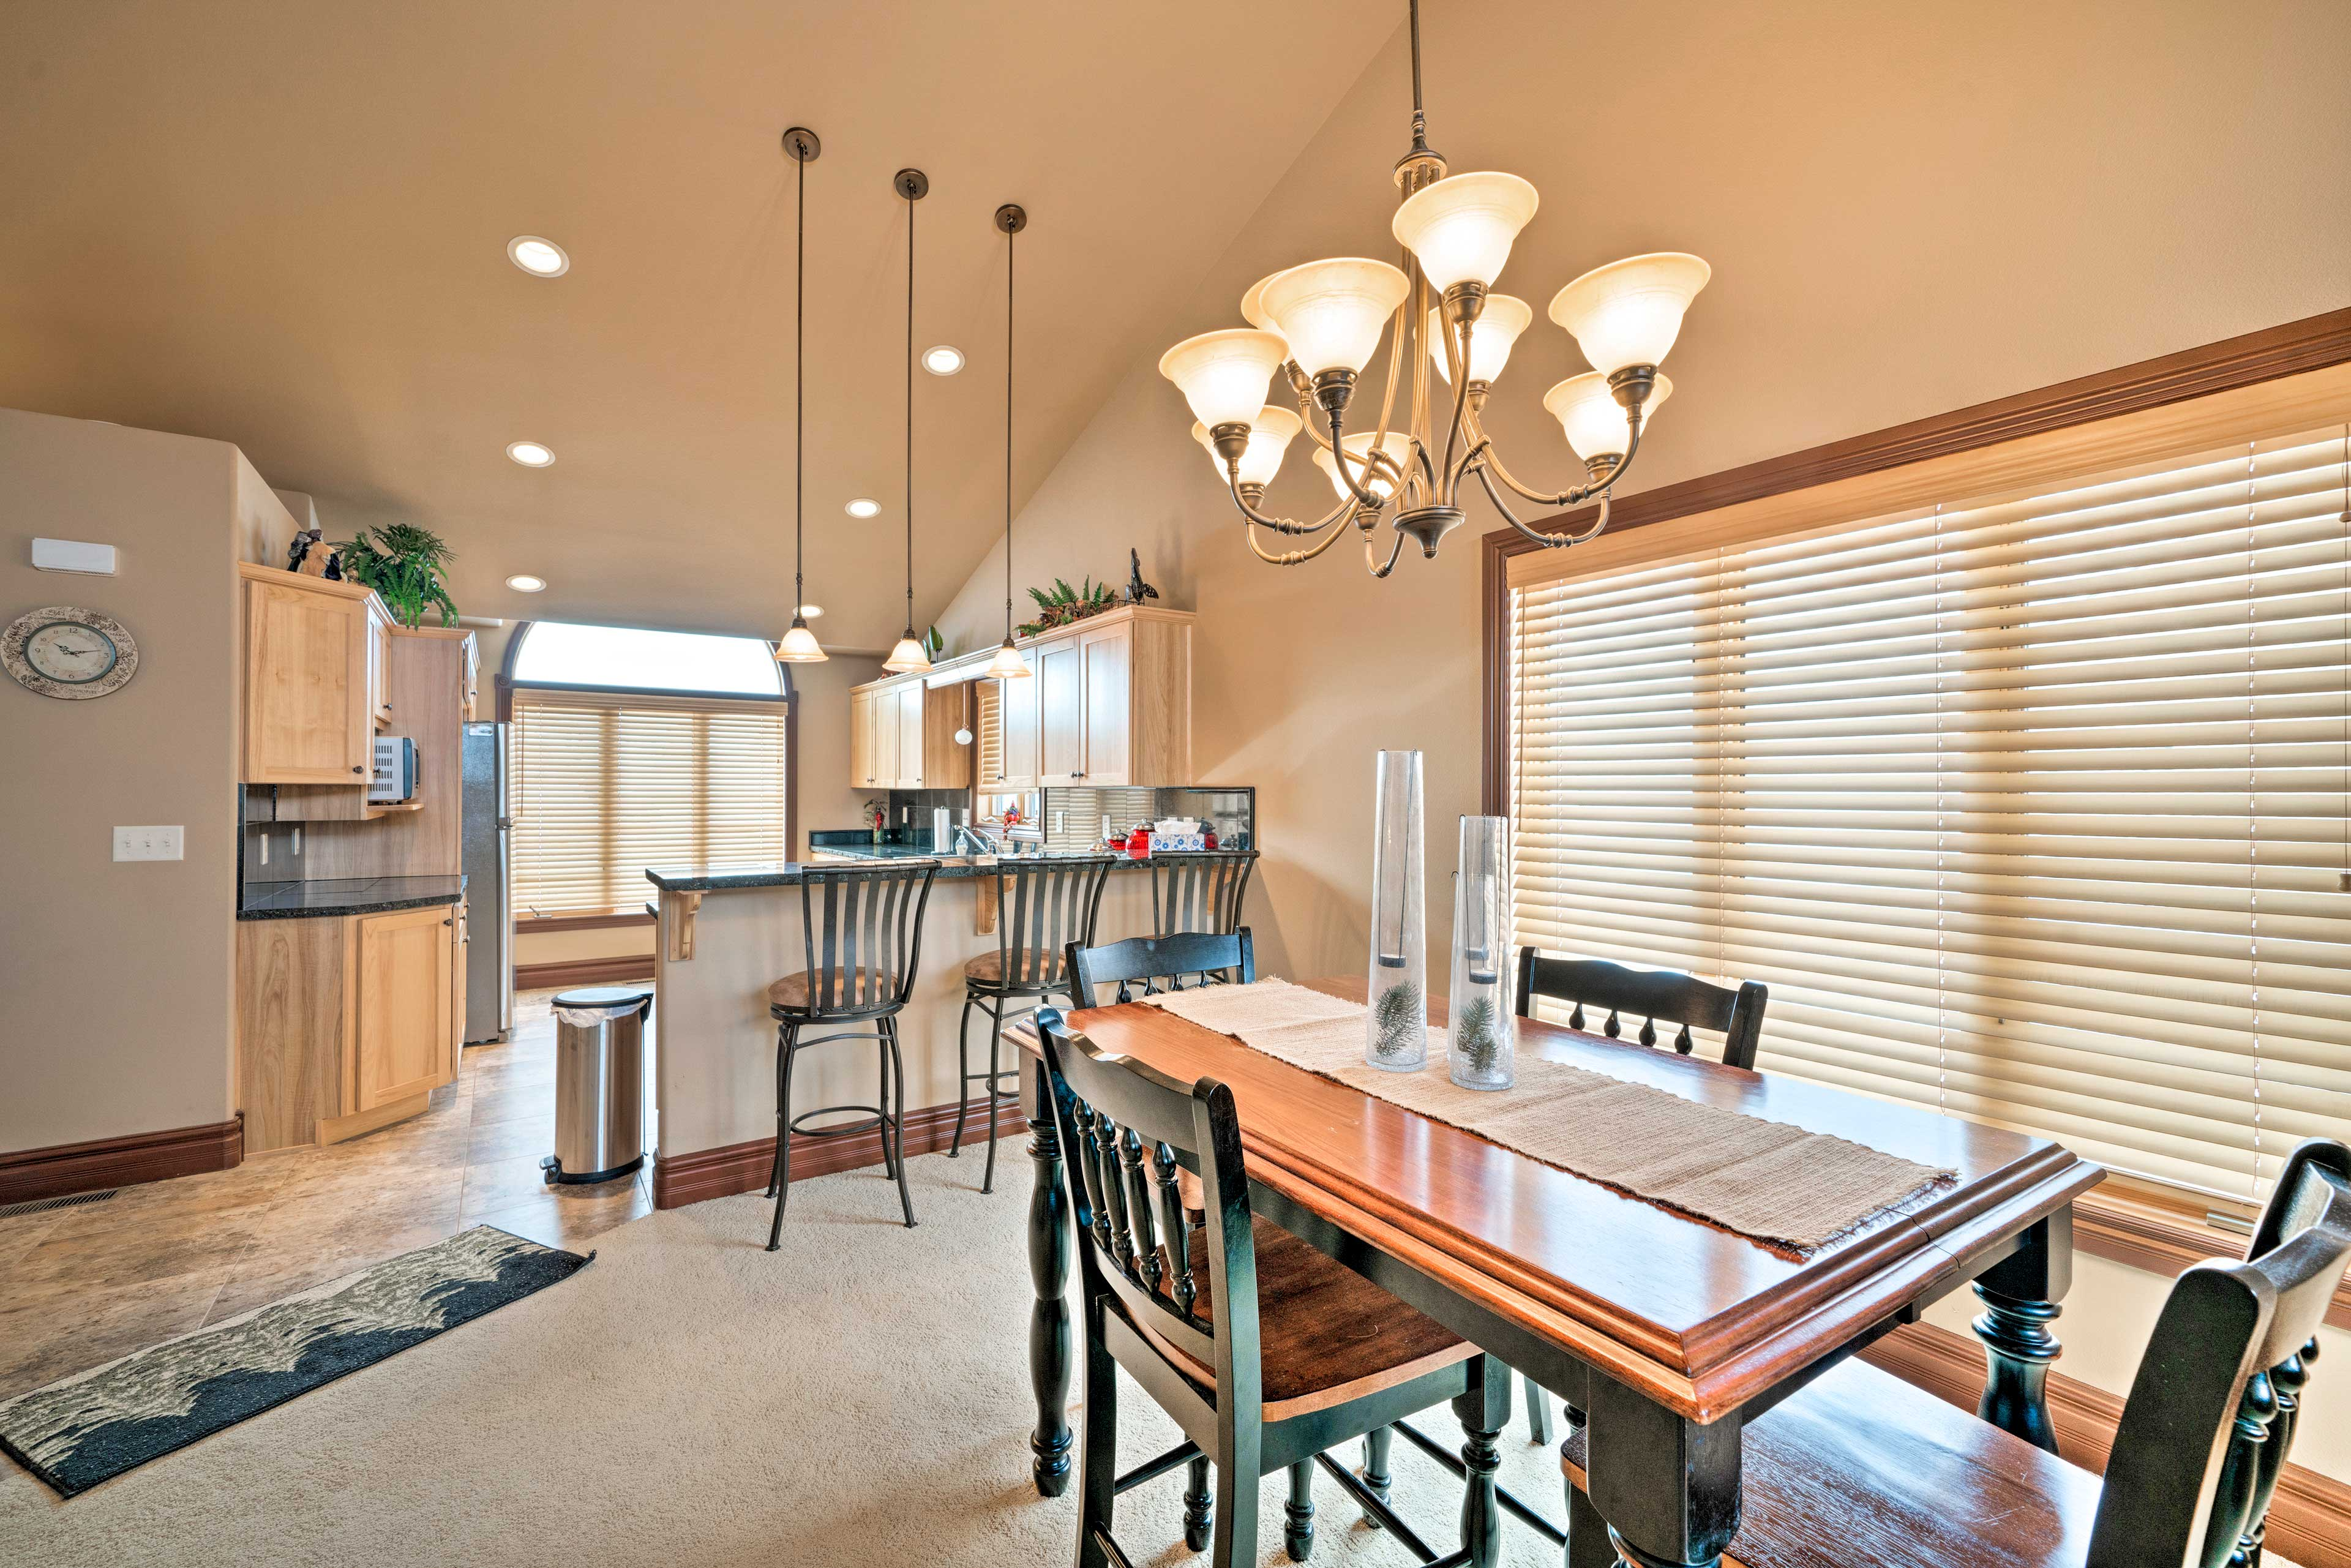 This home can comfortably accommodate groups of 4.